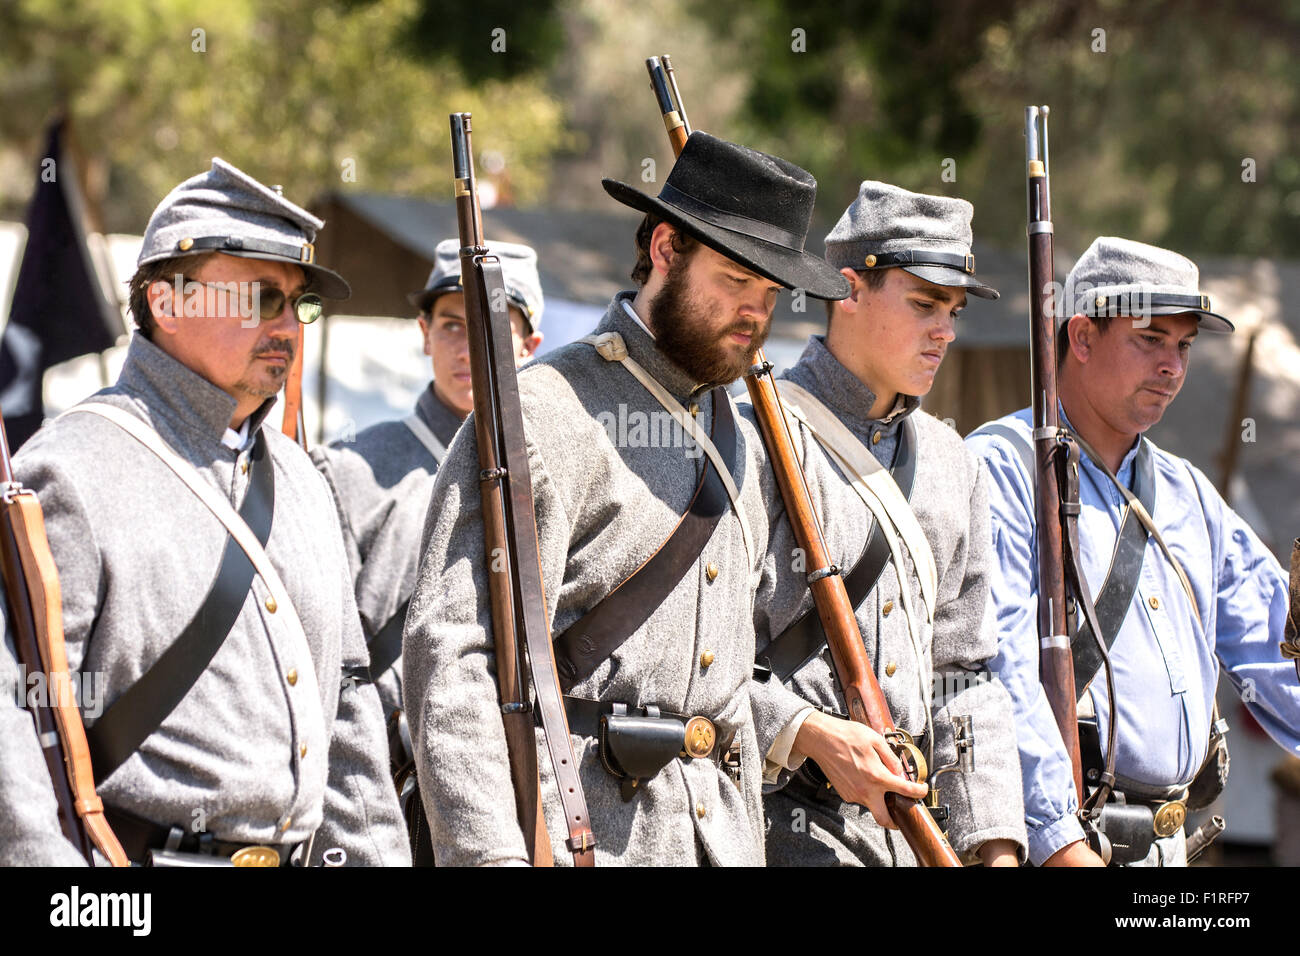 A row of Confederate soldiers standing in formation during a Civil War re-enactment show. - Stock Image